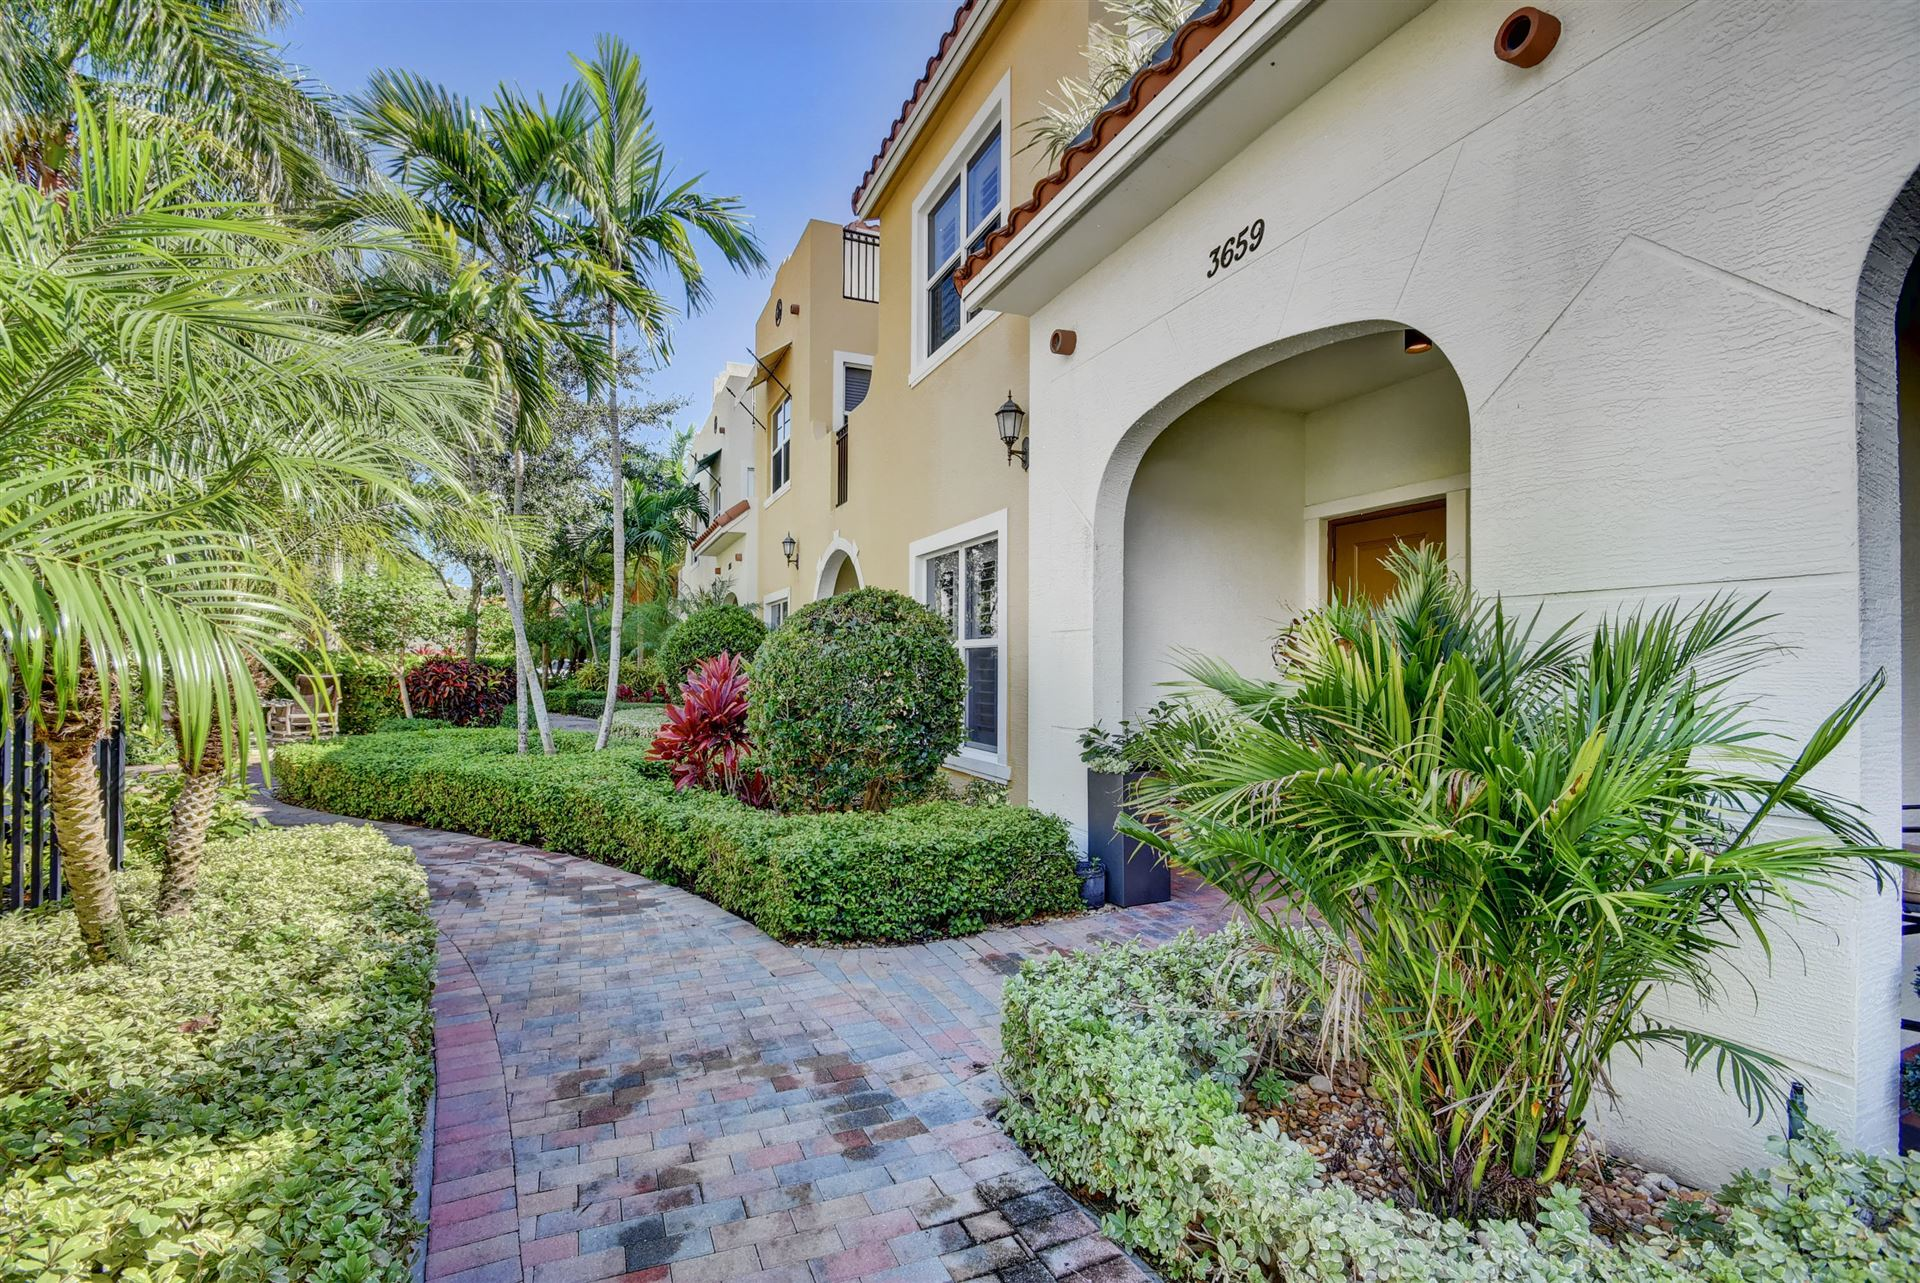 3659 Vintage Way, West Palm Beach, FL 33405 - #: RX-10646115